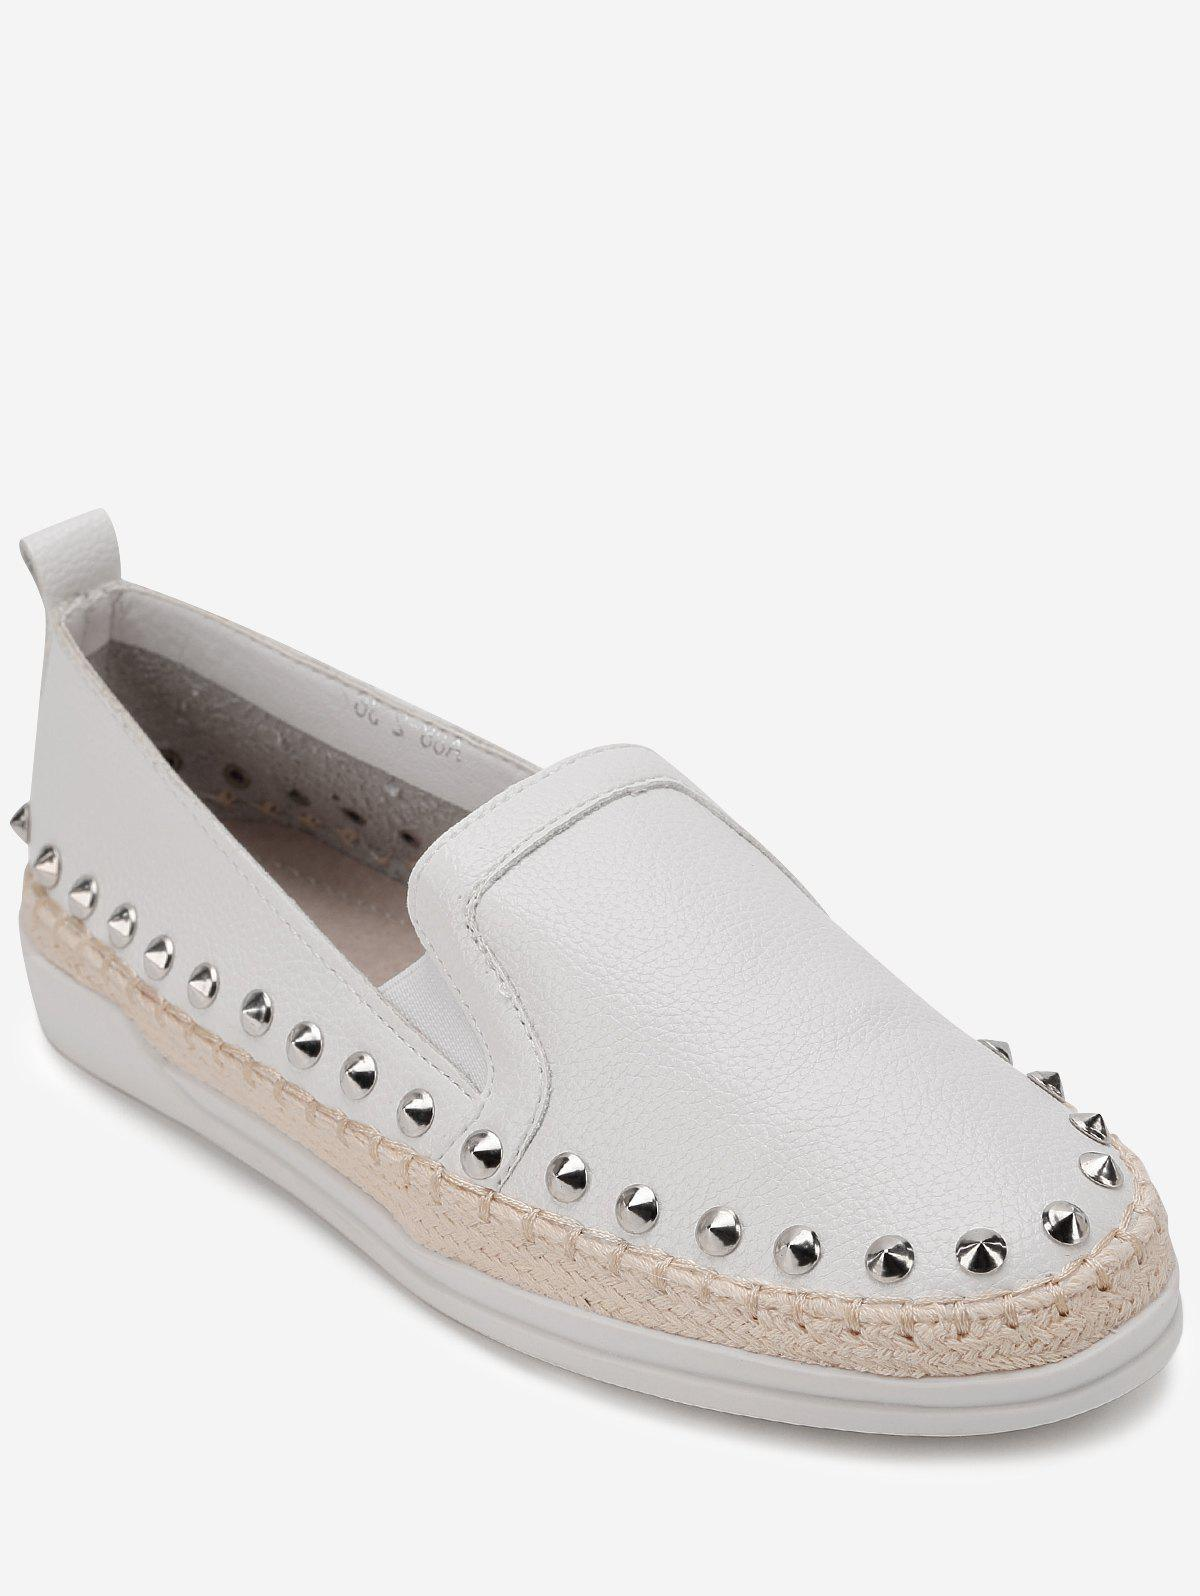 Baskets Mocassins à Bout Pointu en Cuir PU - Blanc 39